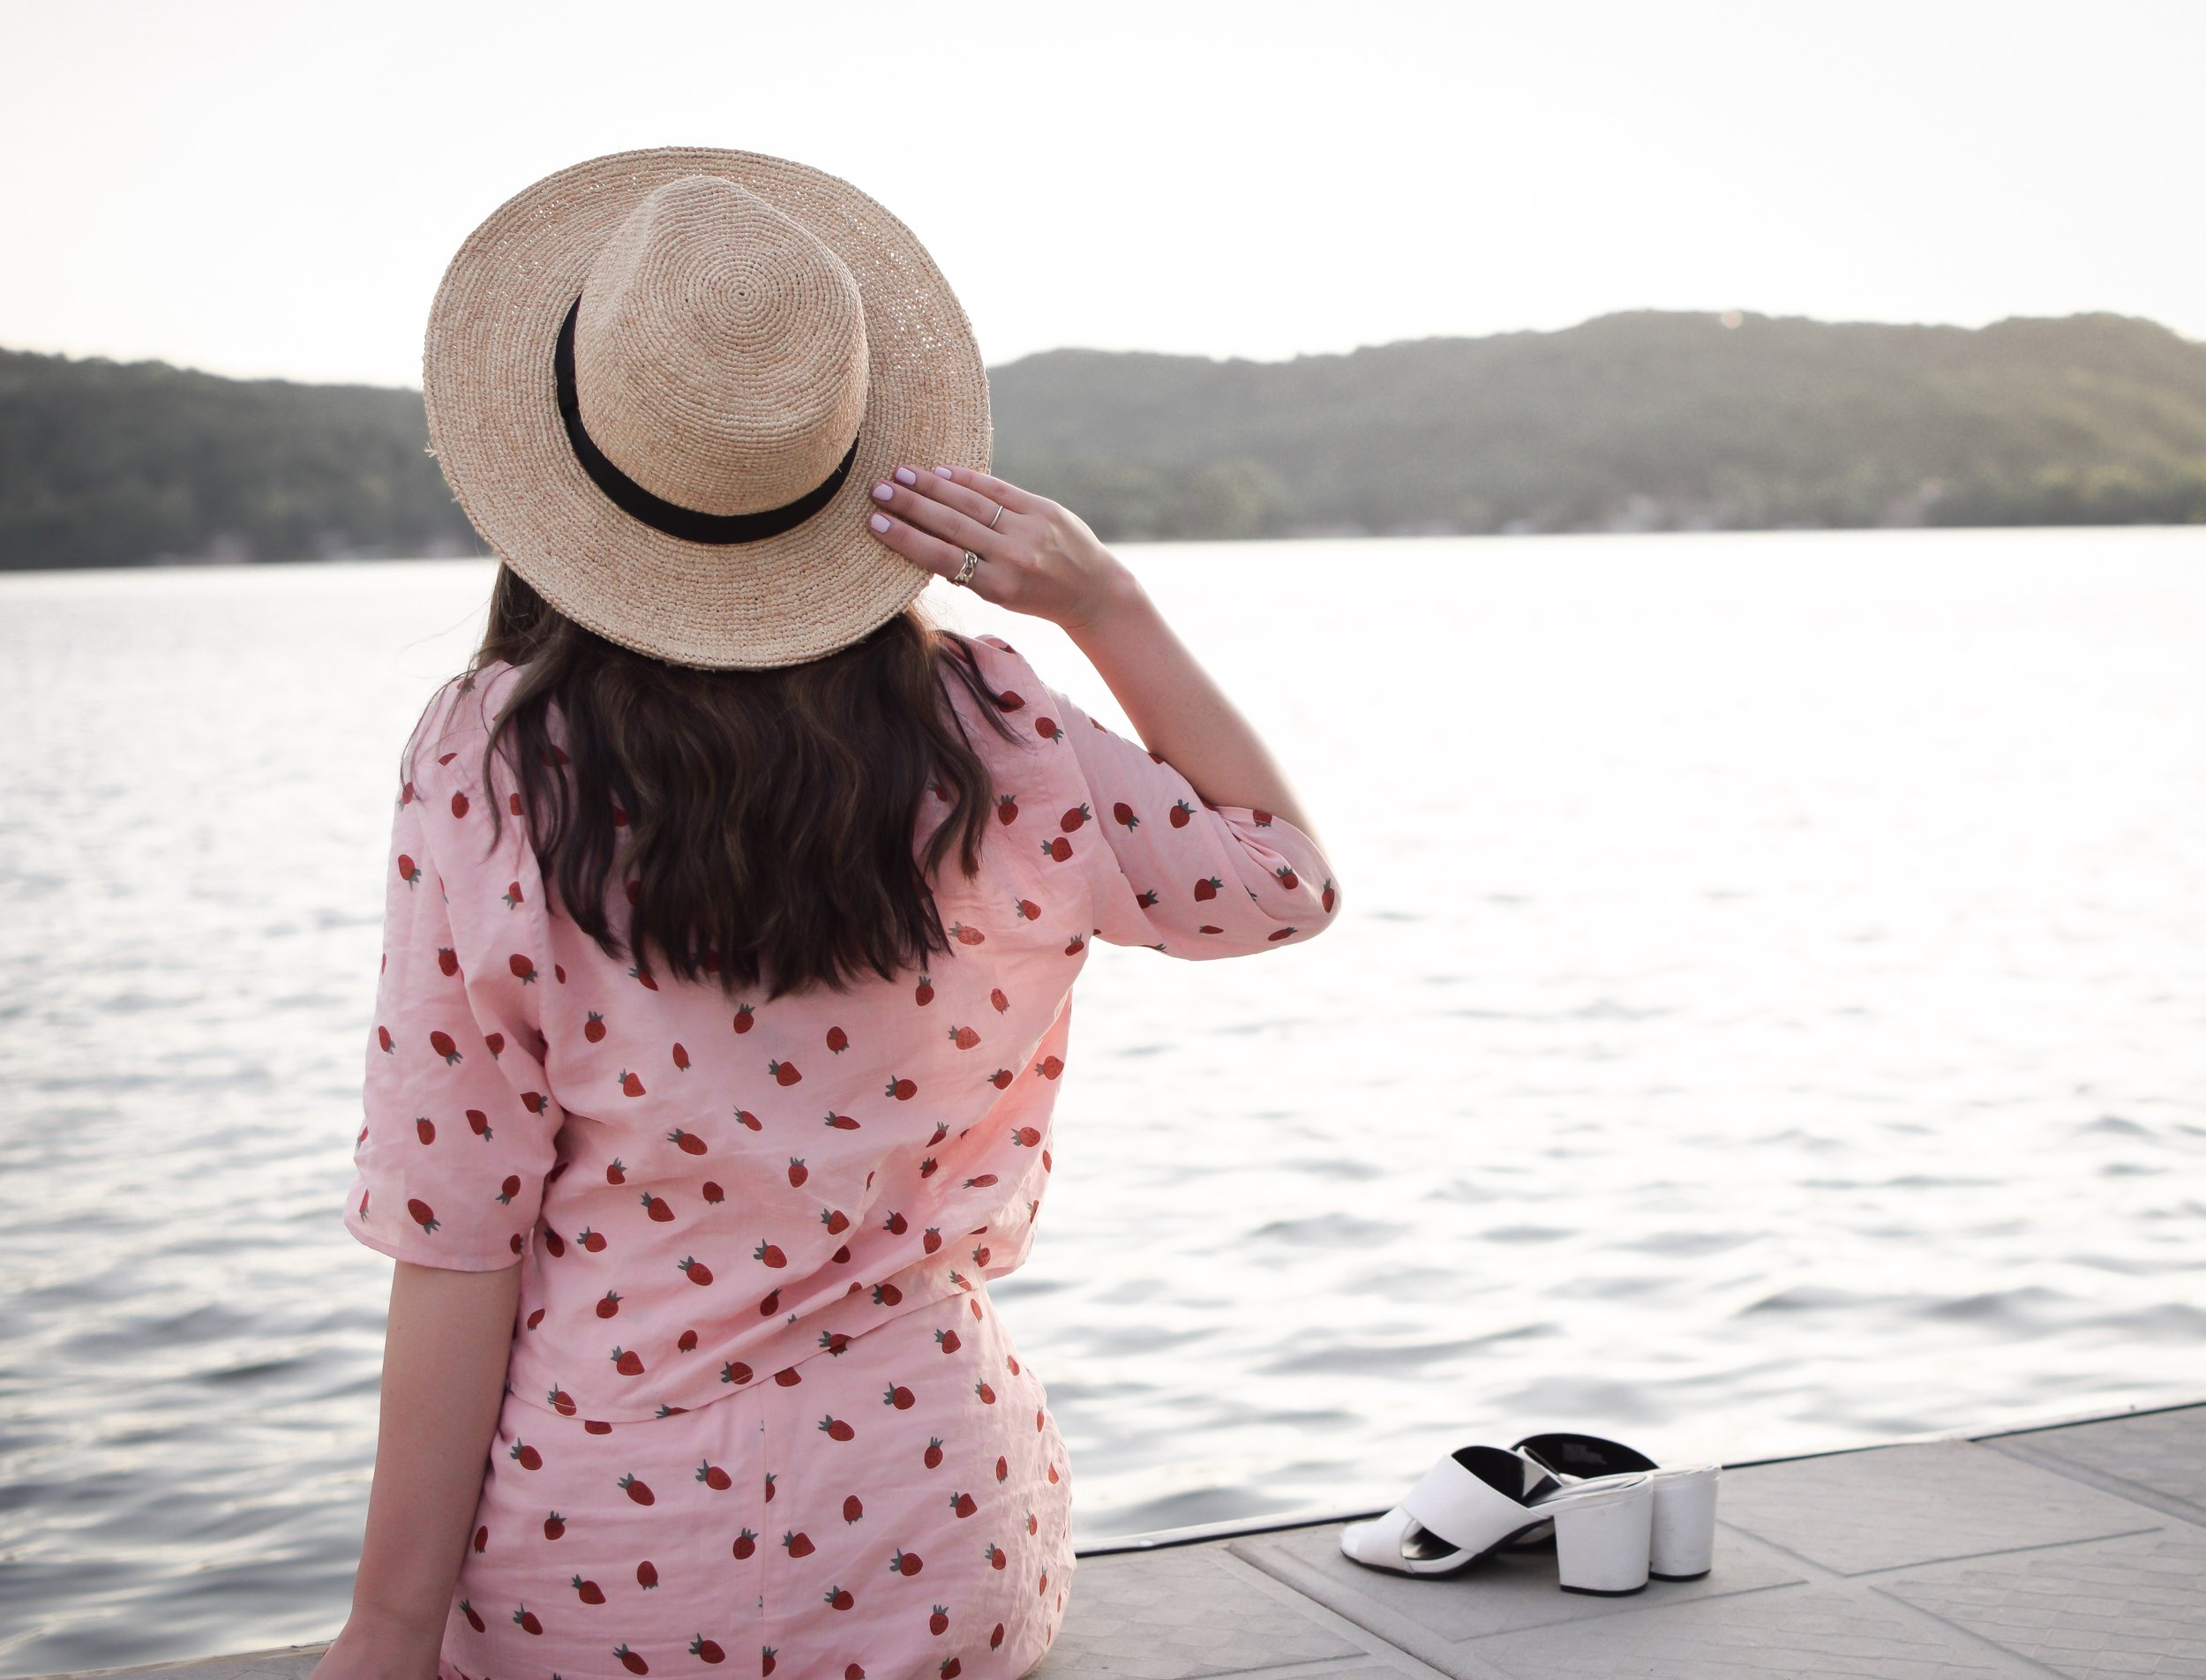 Strawberry Set Walmart Fashion Esther Santer Fashion Blog NYC Street Style Blogger Outfit OOTD Trendy Shopping Girl What How To Wear Affordable Fruit Trend Straw Hat Vacation Lake of the Ozarks White Mules  Sandals Nature Travel Shopping Two Piece Set.JPG